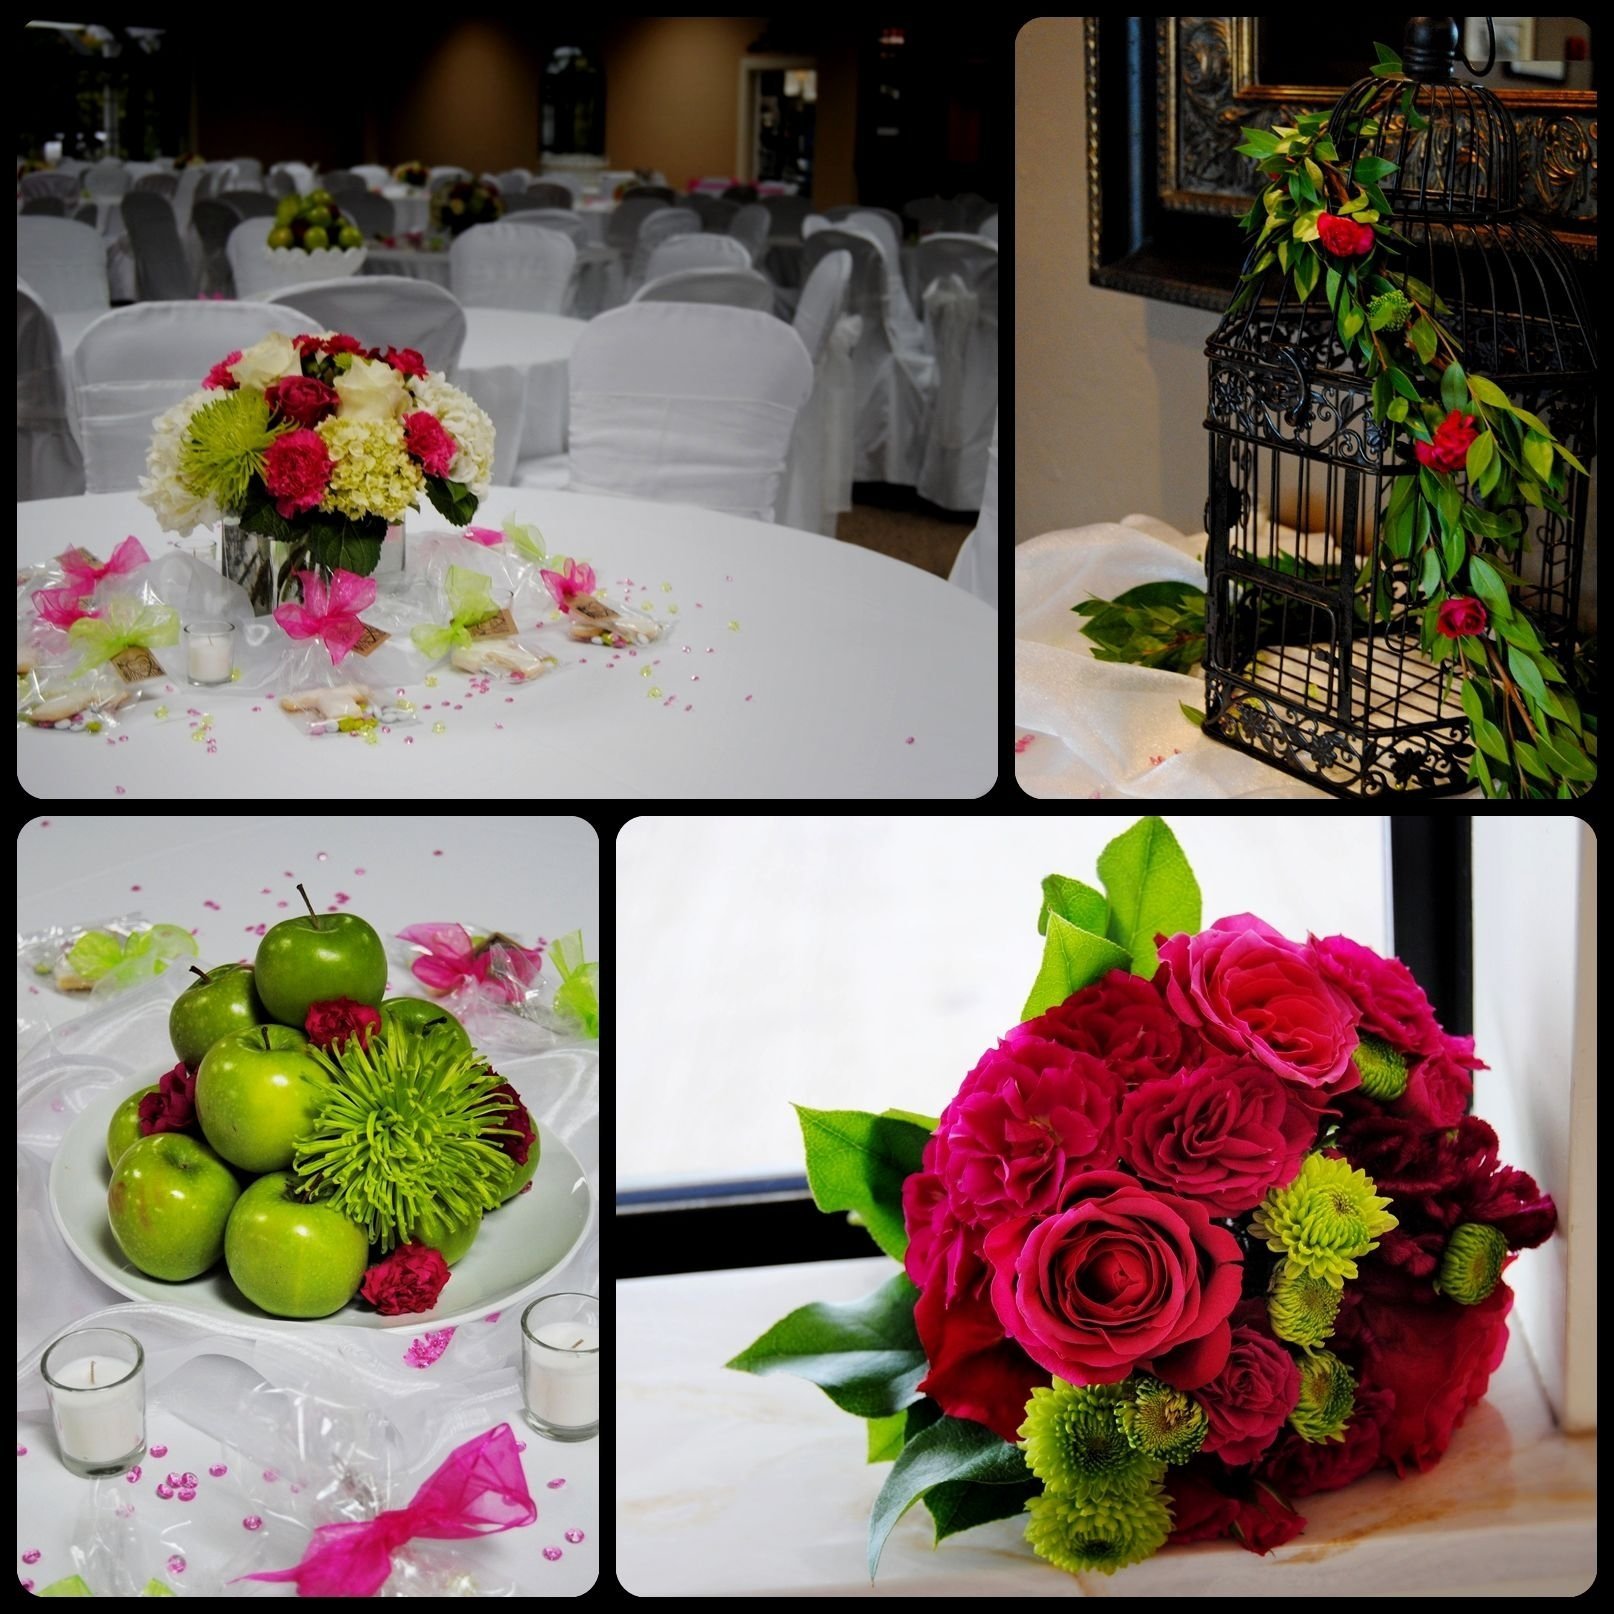 10 Awesome Pink And Green Wedding Ideas wedding centerpiece ideas green decorating of party 2020